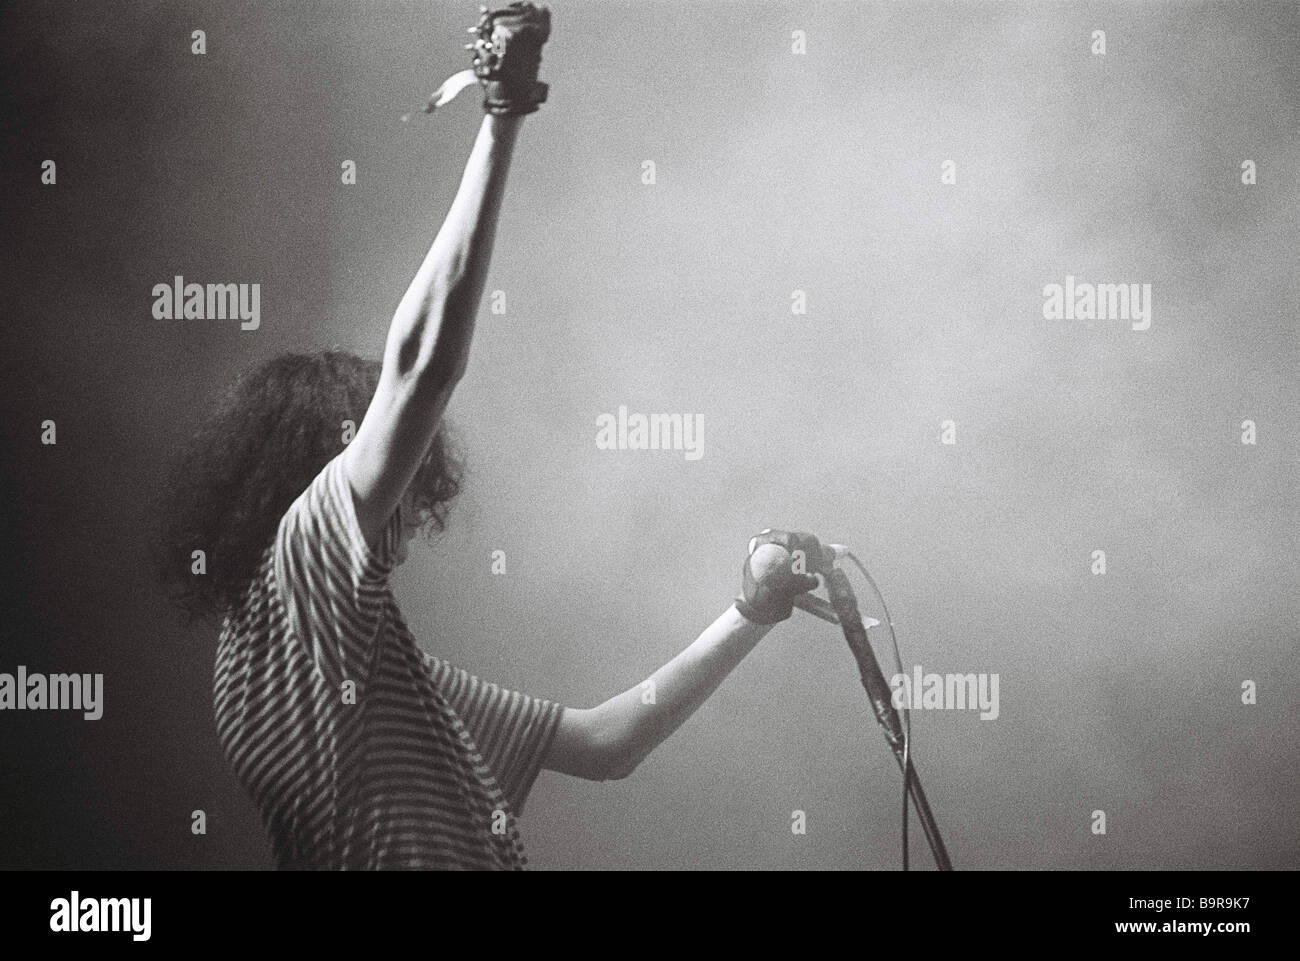 Joey Ramone singer of The Ramones live on stage at the Paradiso club in Amsterdam. 1989 Stock Photo